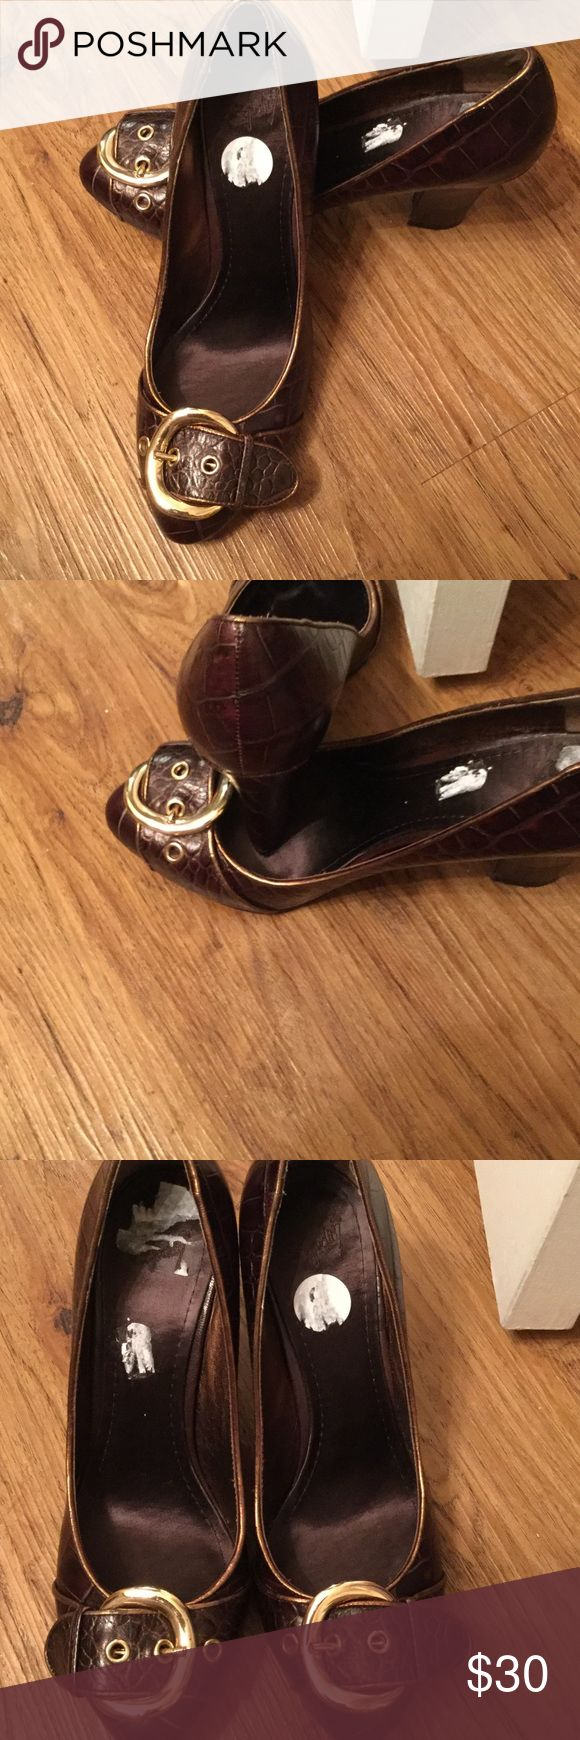 Studio 9 Ladies Shoes Leather Chocolate Brown Croc with gold buckle shoes were purchase at DSW they are like new with thick chunky heel so they are very comfortable!!! Studio 9 Shoes Heels